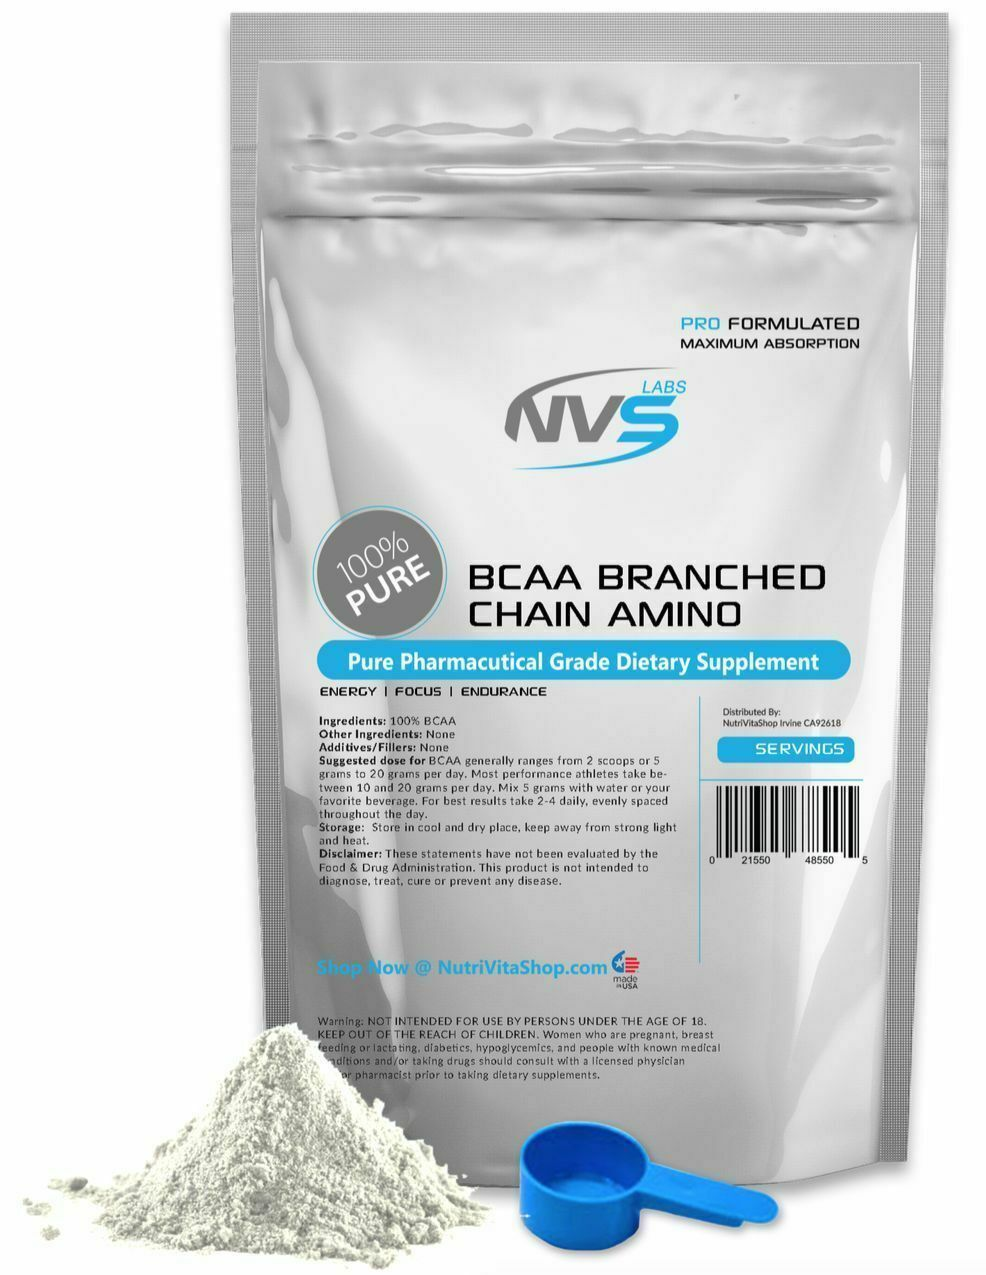 NVS 100% BRANCHED CHAIN AMINO ACIDS POWDER KOSHER - BCAA FREE FORM VEGAN NONGMO